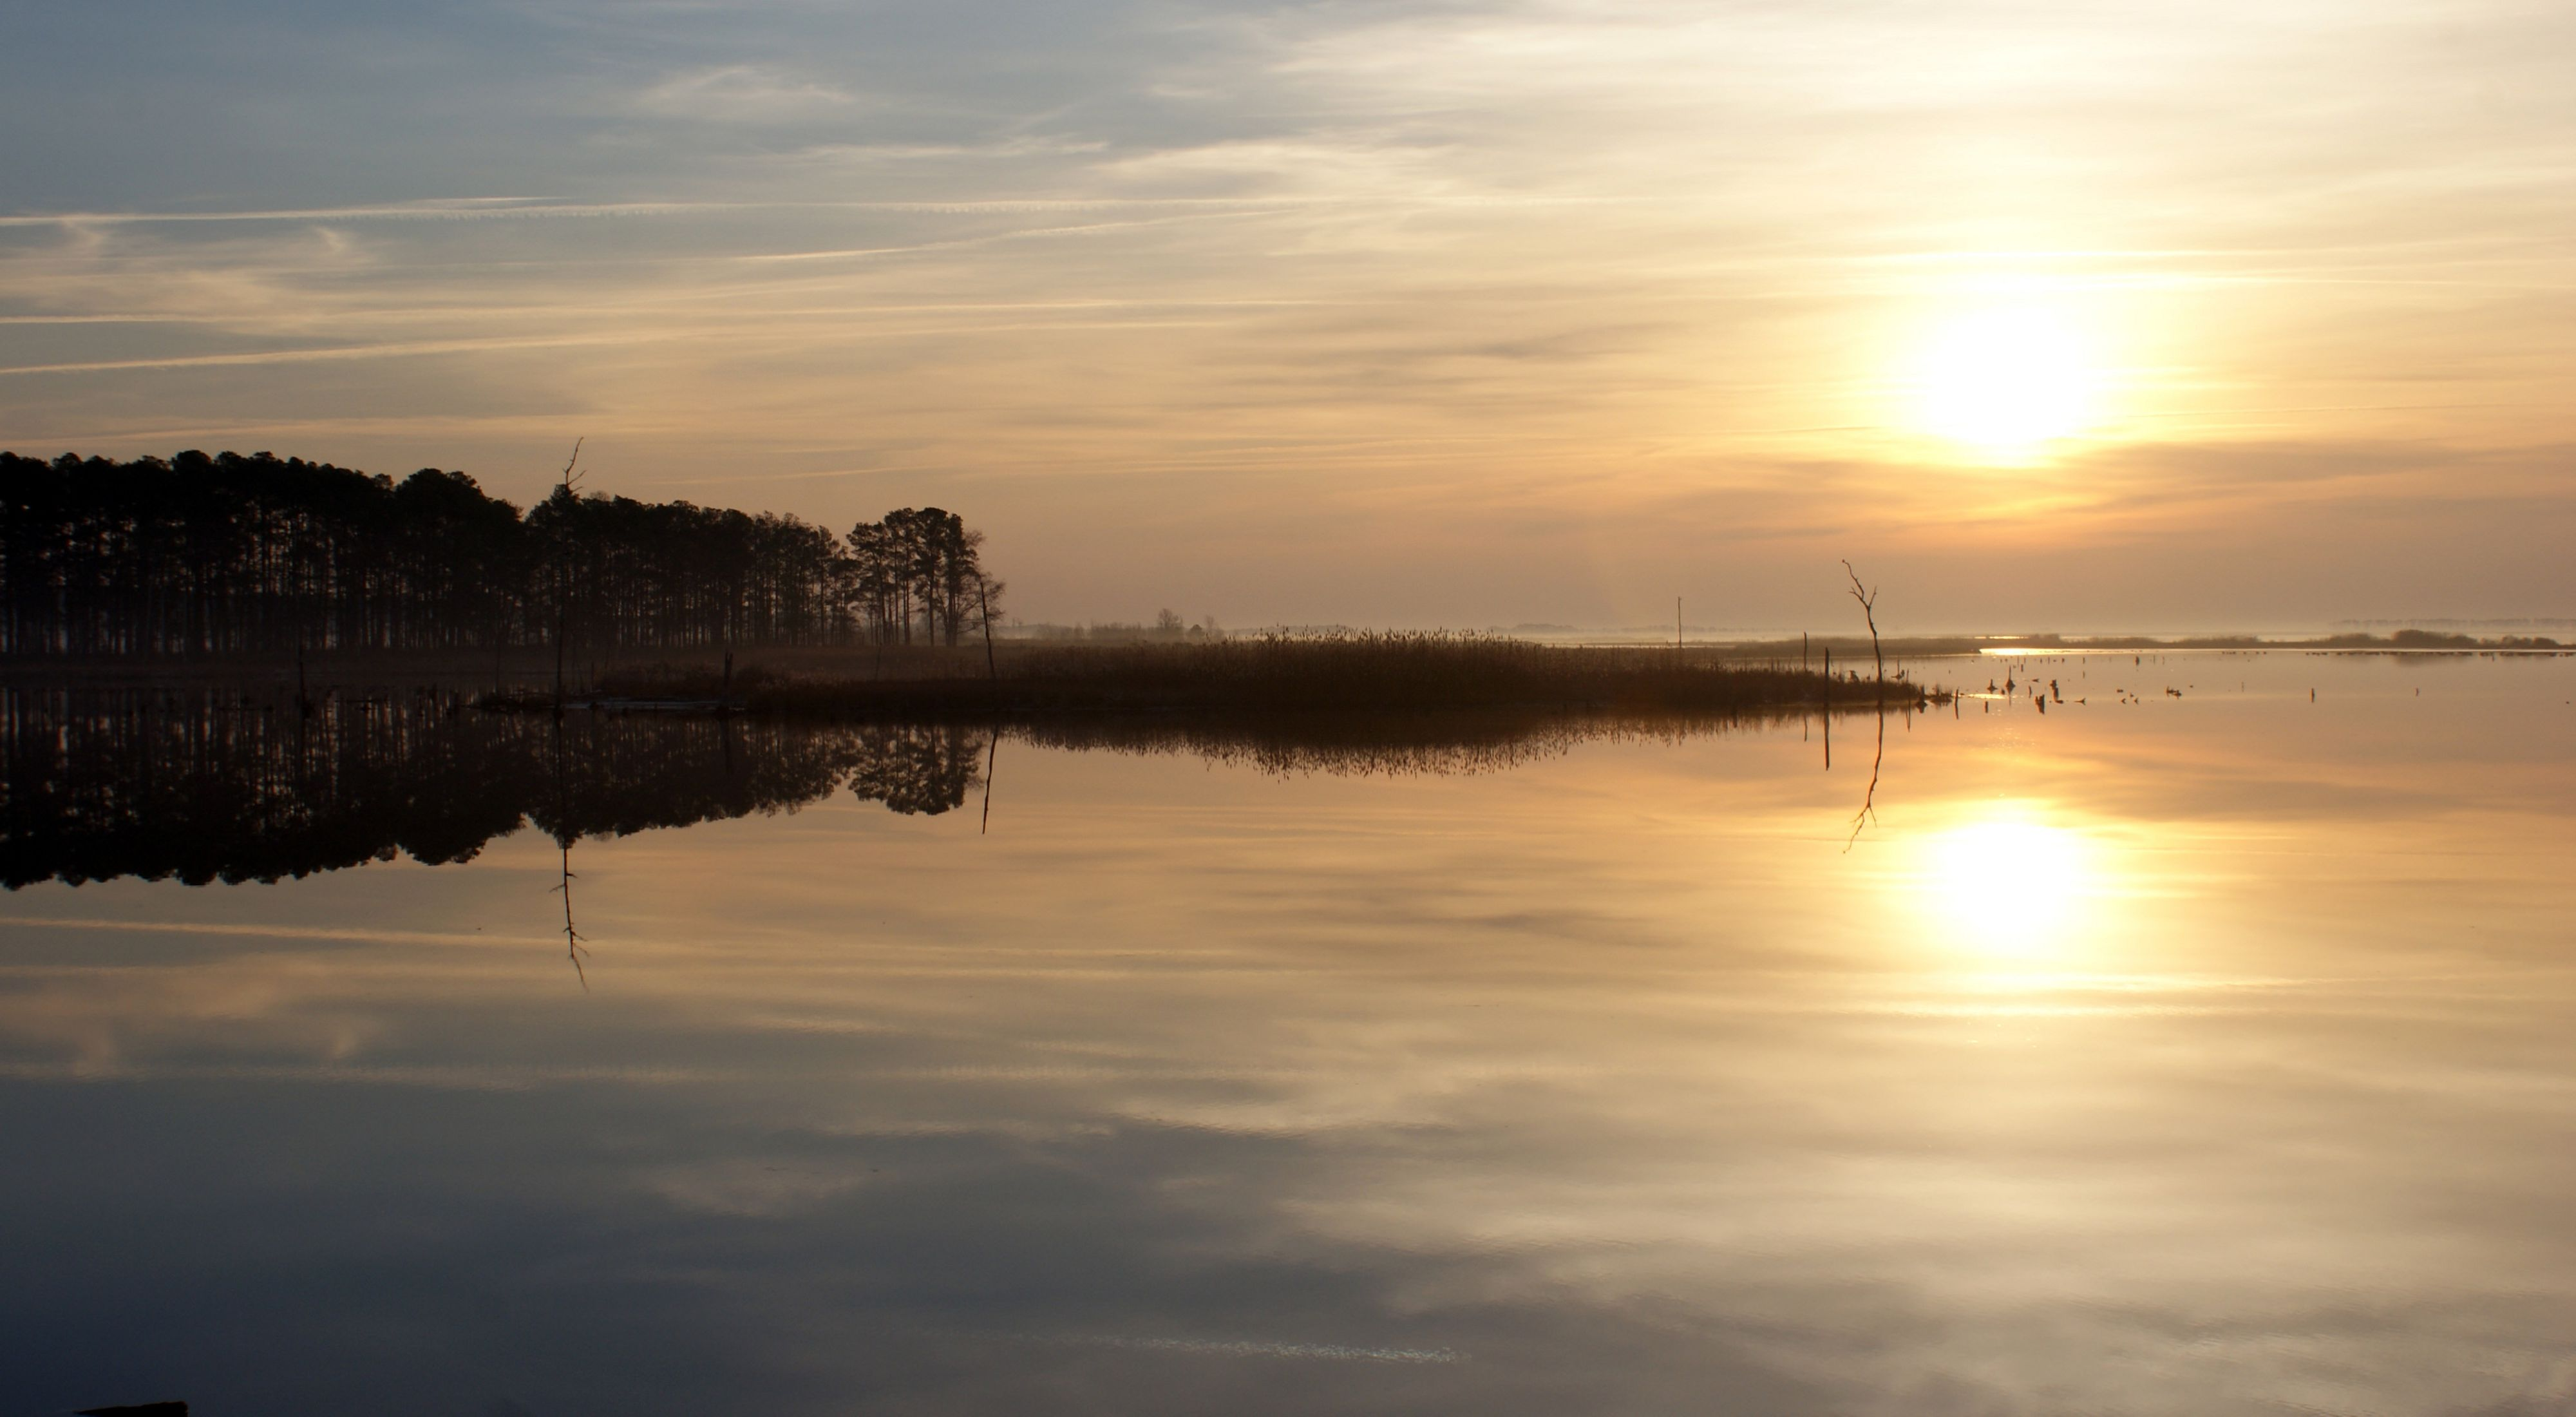 The setting sun and tall pine trees are reflected in the calm water of the Blackwater River.